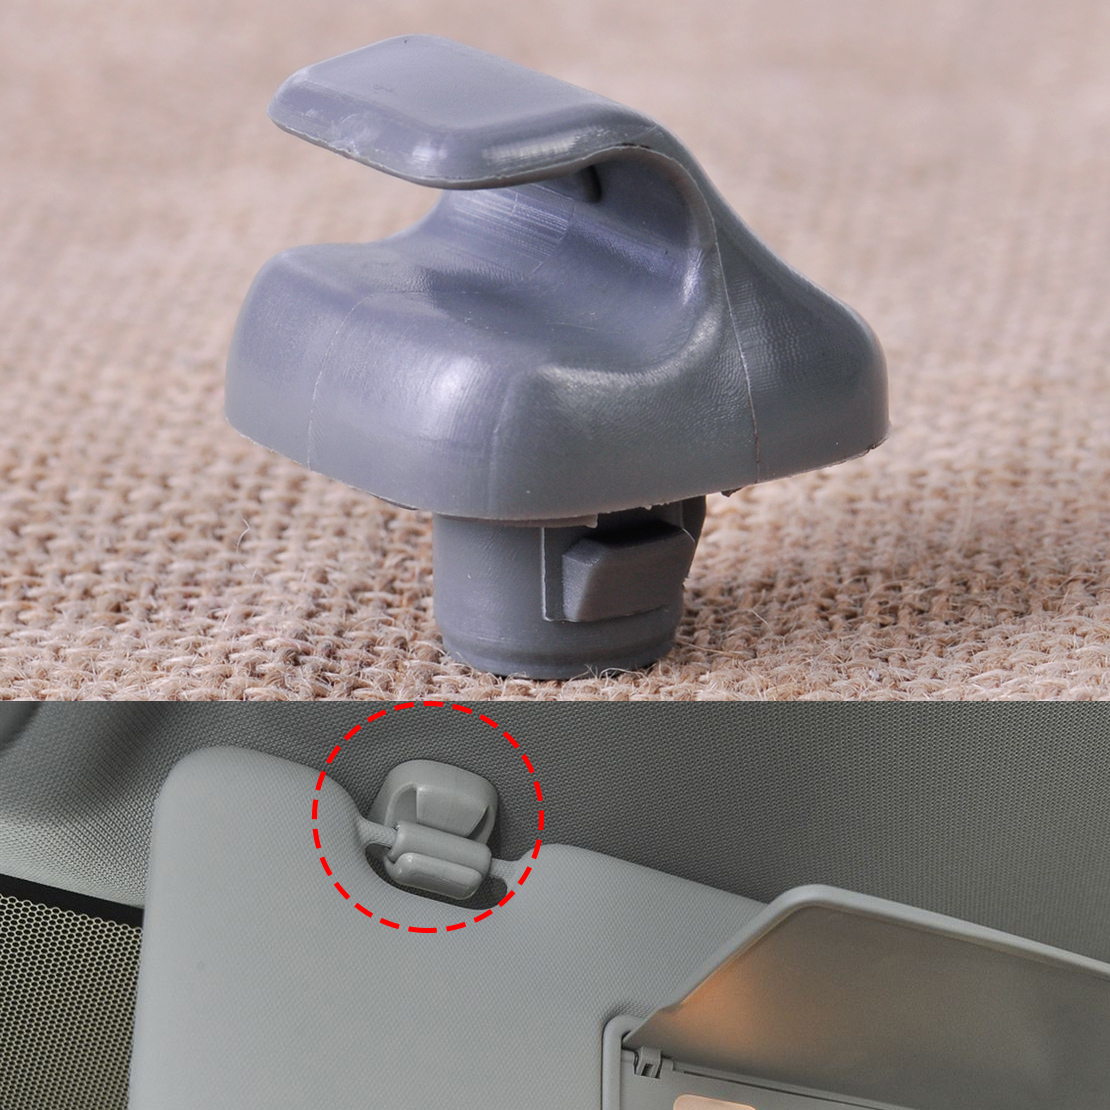 Details about 88217S01A01ZA Grey Sun Visor Sunvisor Clip Hook Fit Honda  Accord Civic CR-V New 3ac237206fd